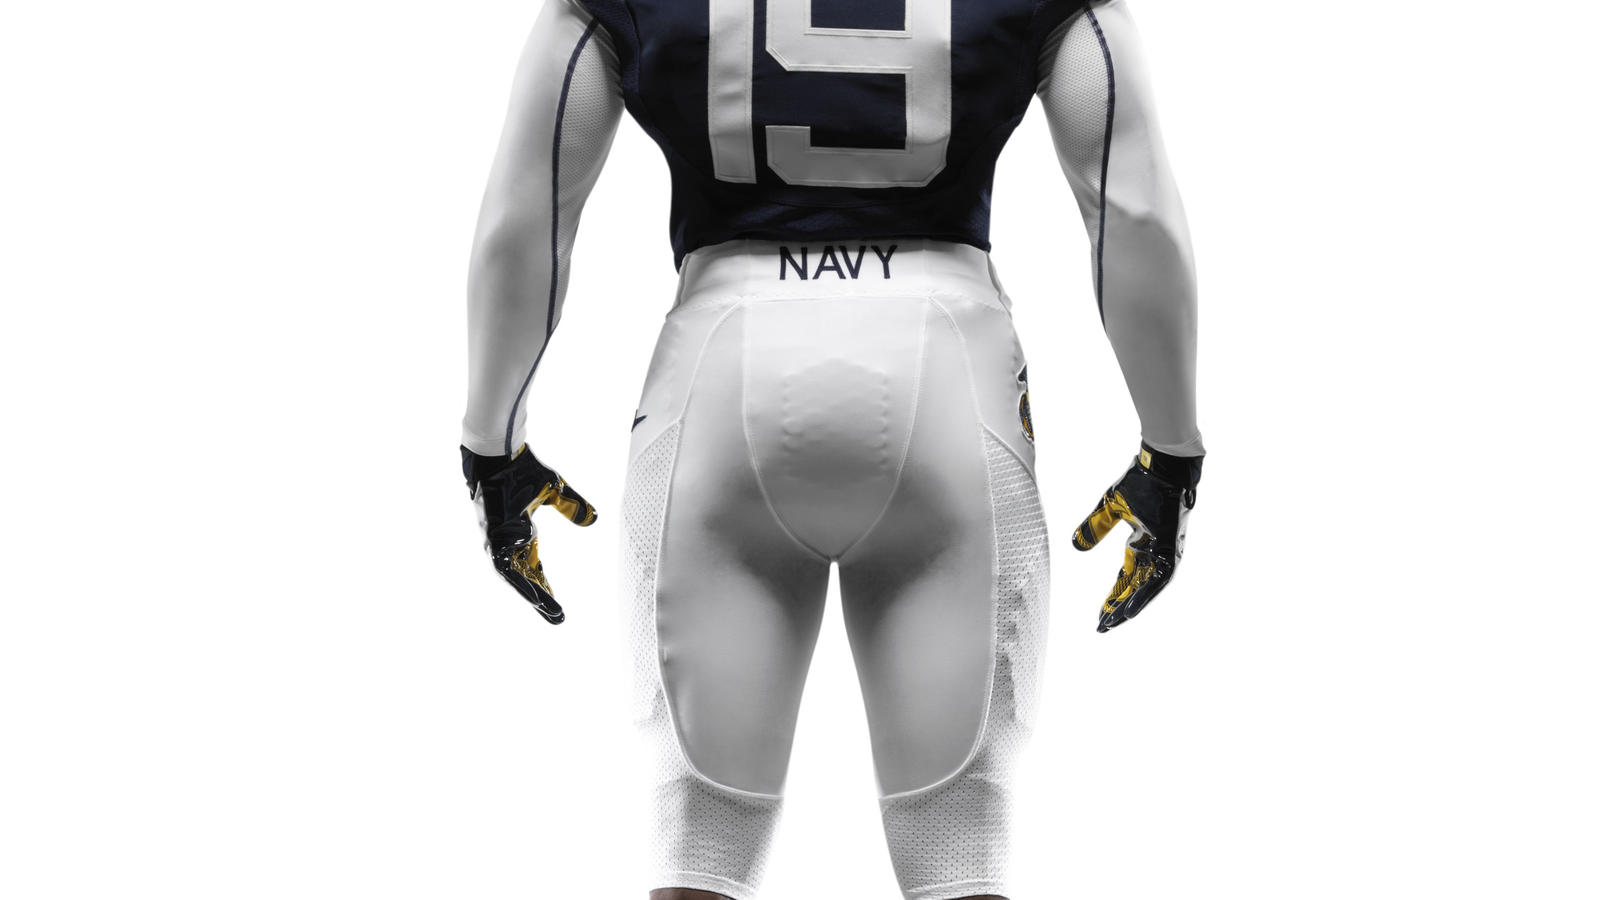 ncaa_fb13_uniforms_navy_full_uniform_back_base_0000